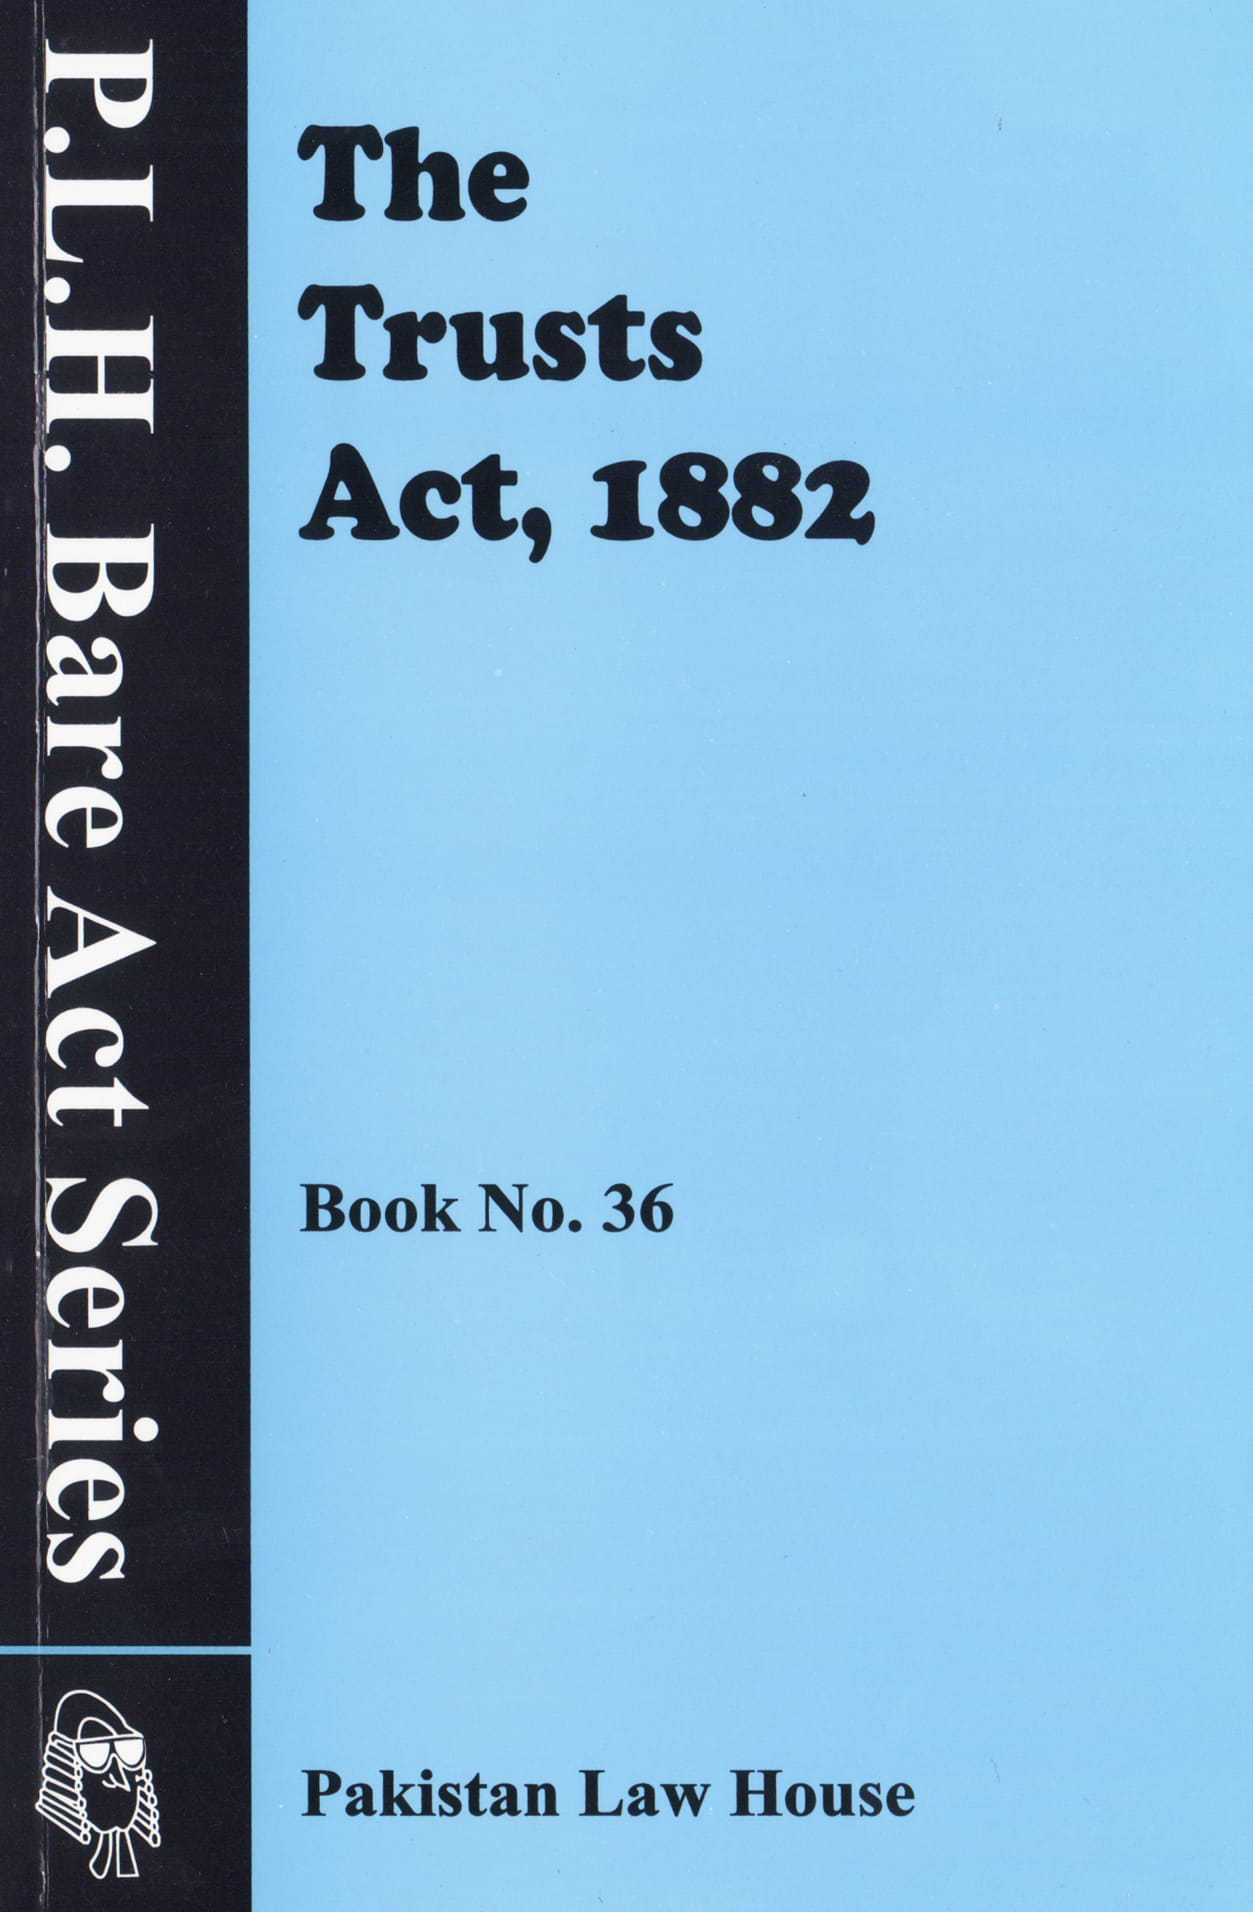 The Trusts Act, 1882